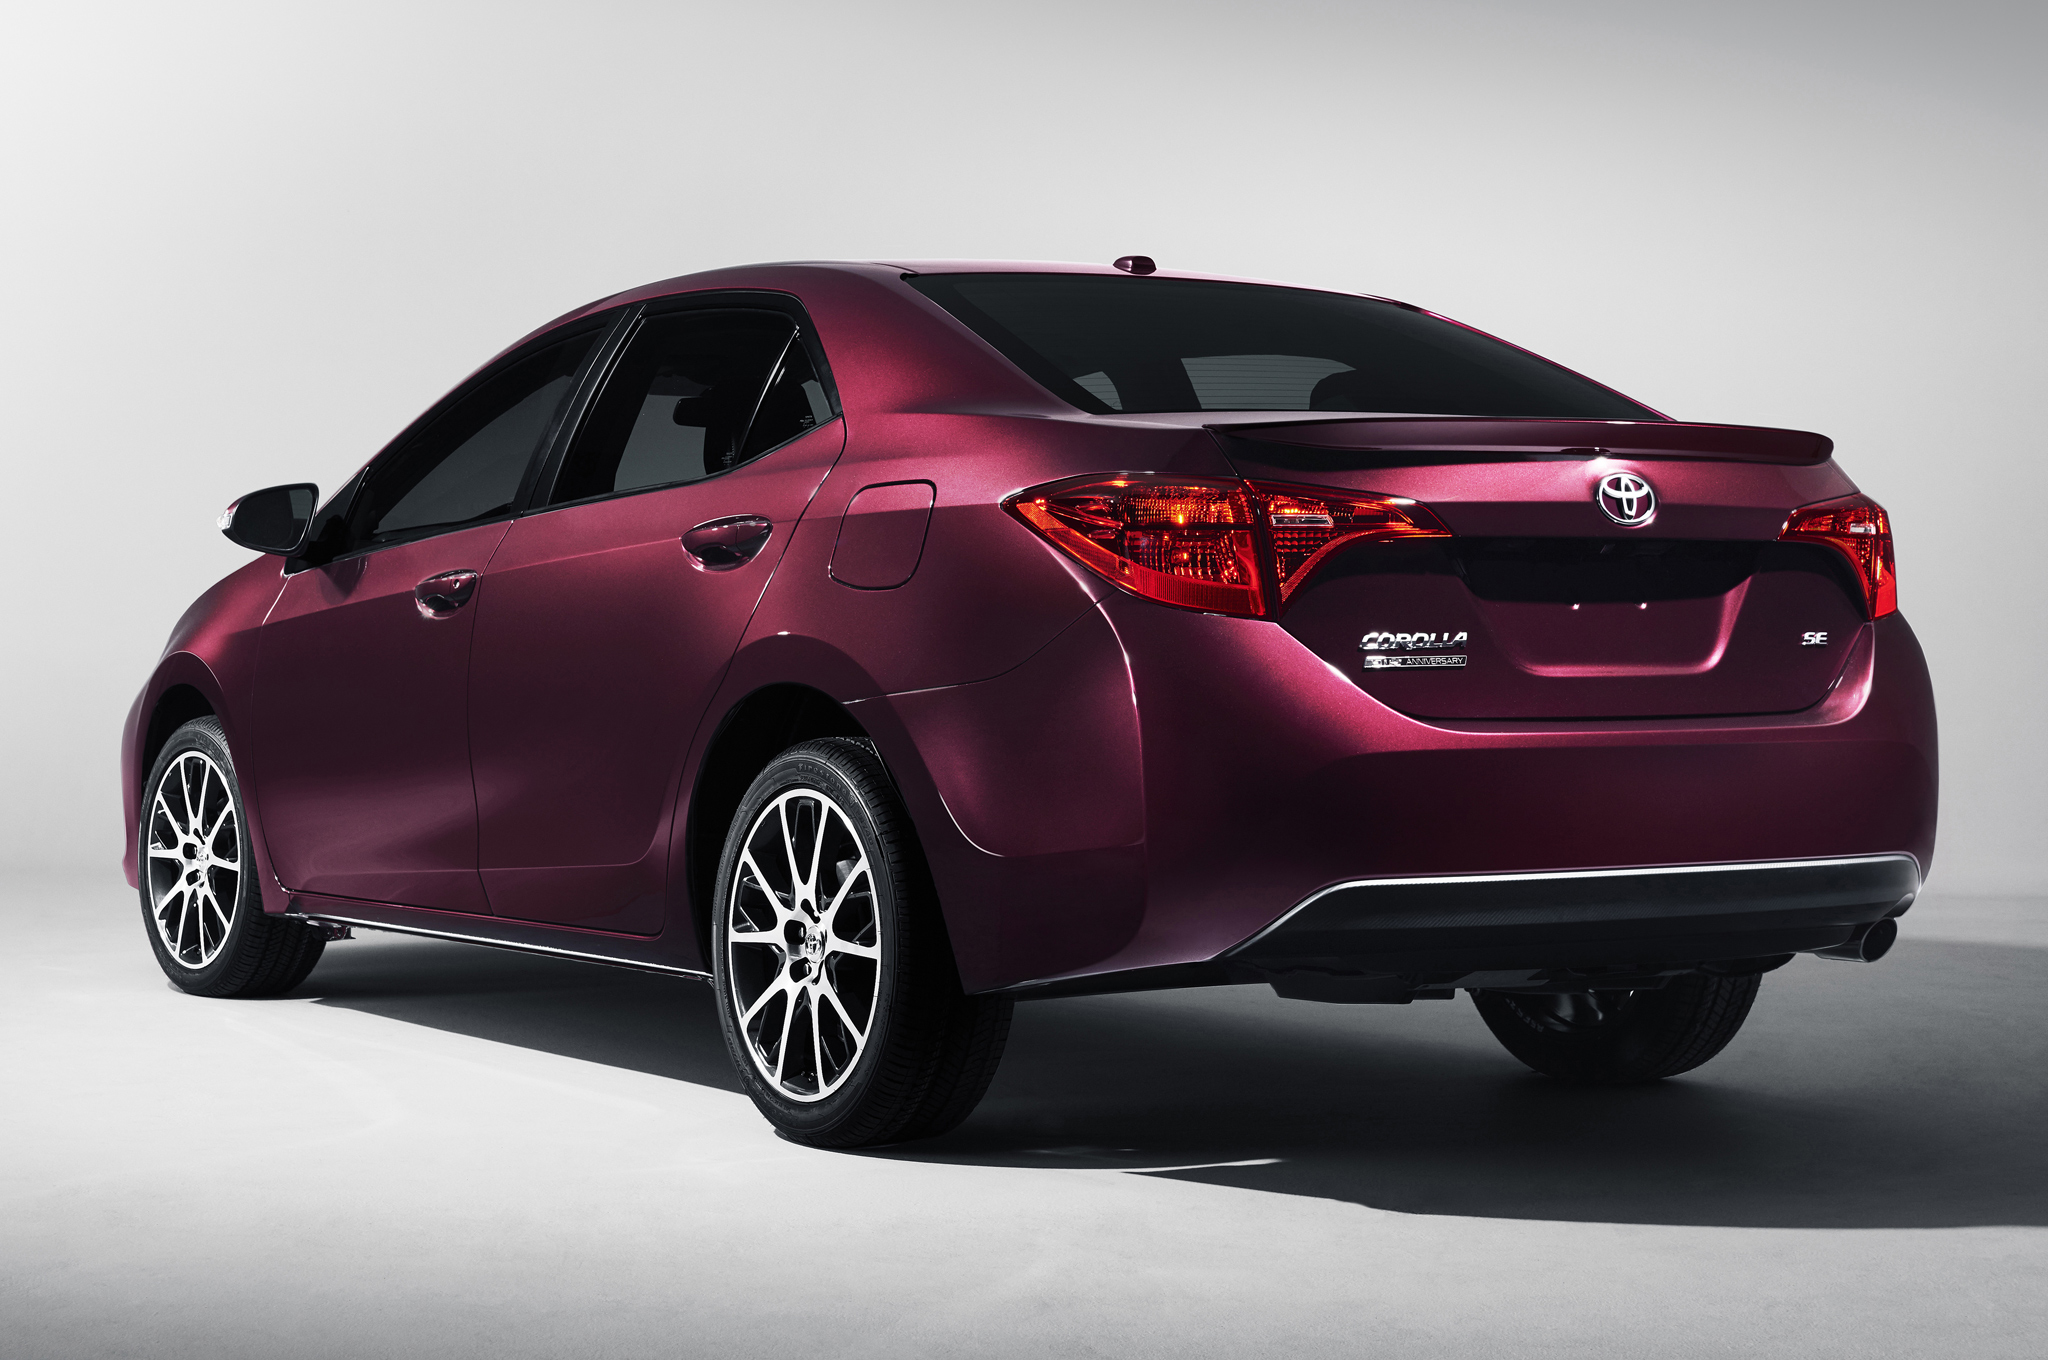 2017-Toyota-Corolla-50th-Anniversary-Special-Edition-rear-side-view.jpg